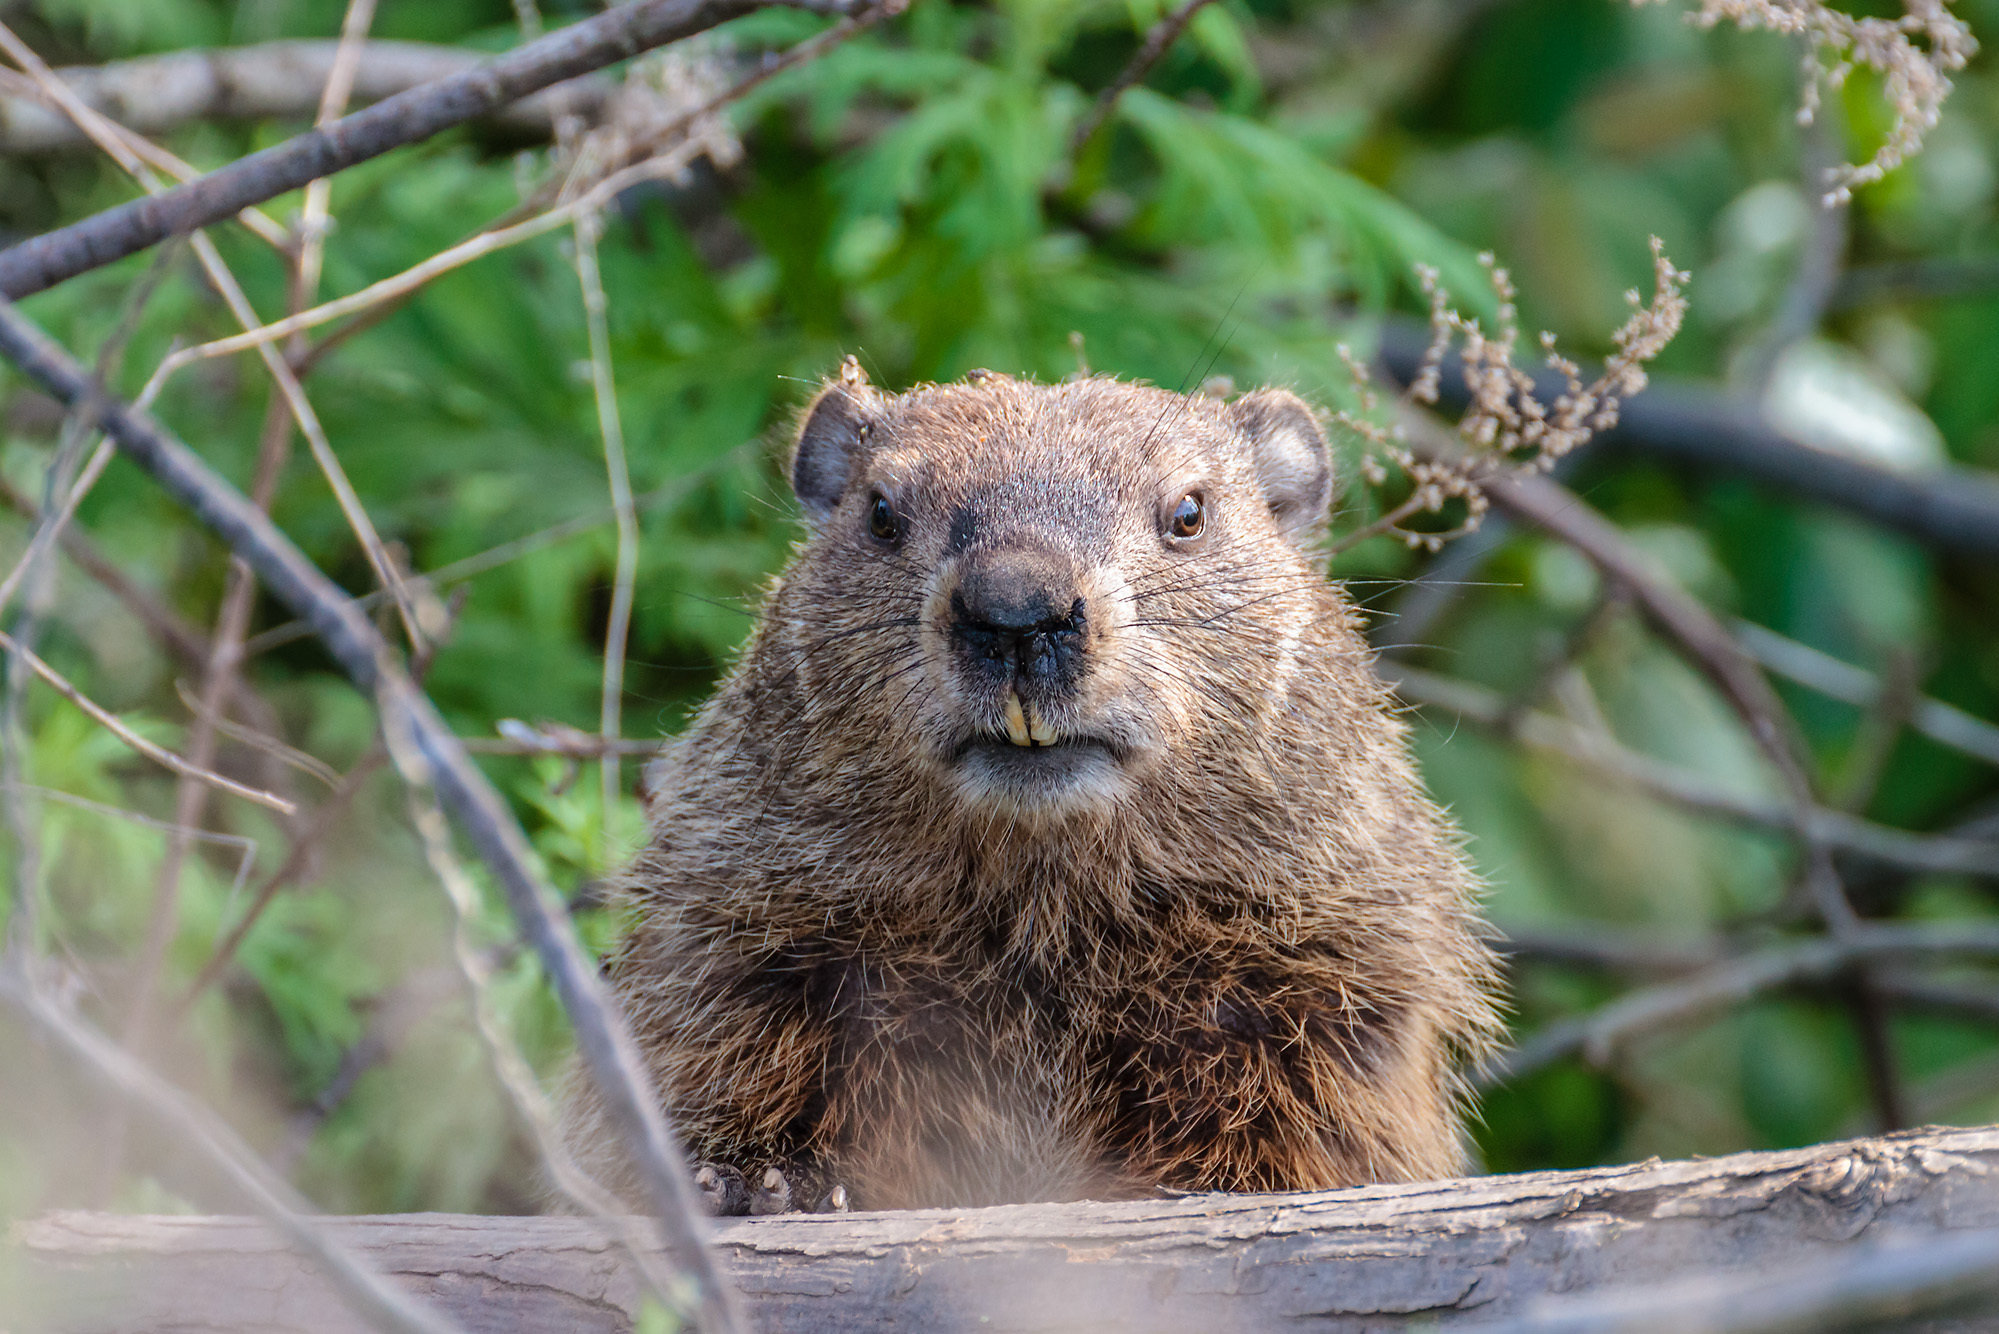 Groundhogs In Burrows Across The City It 39s Groundhog Day Year Round